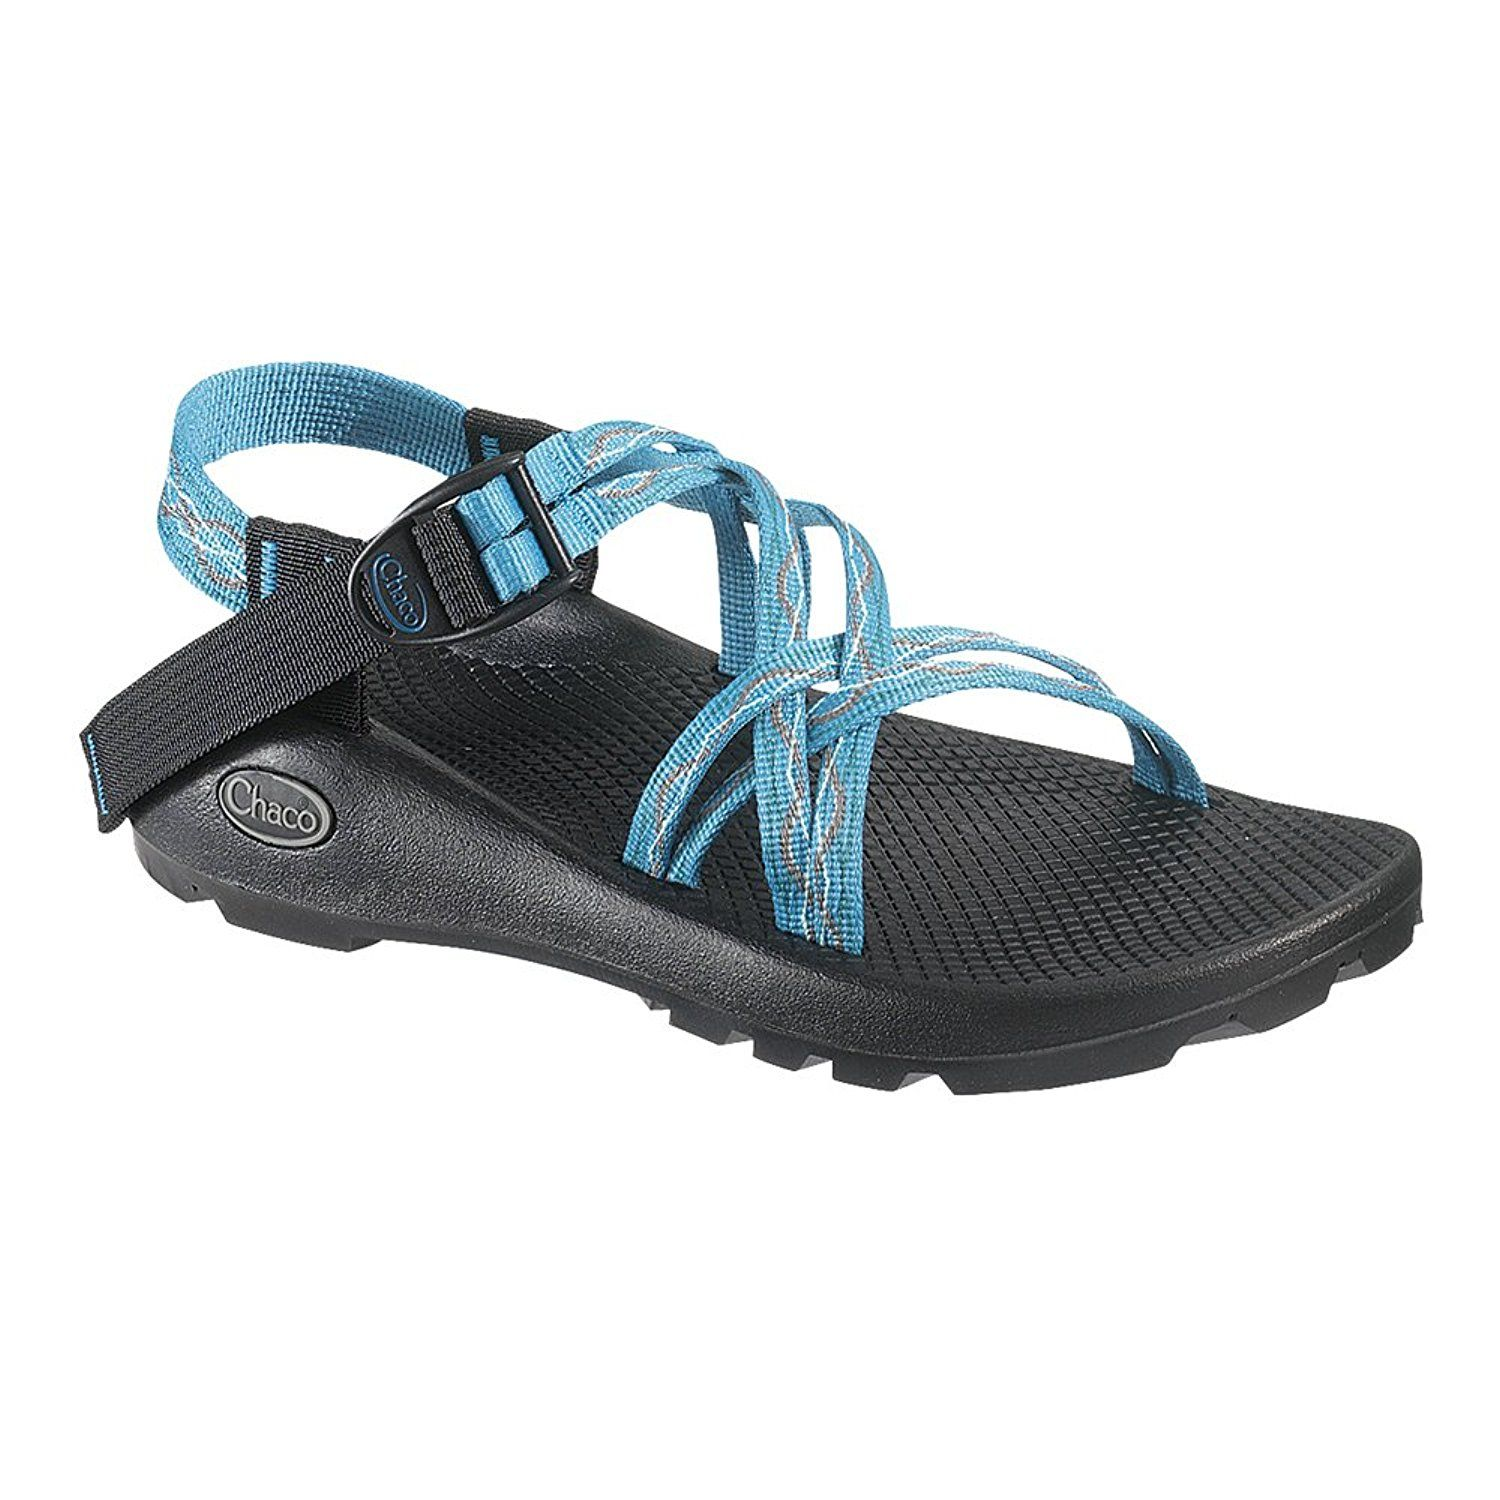 Chaco womens zx1 unaweep sandal special product just